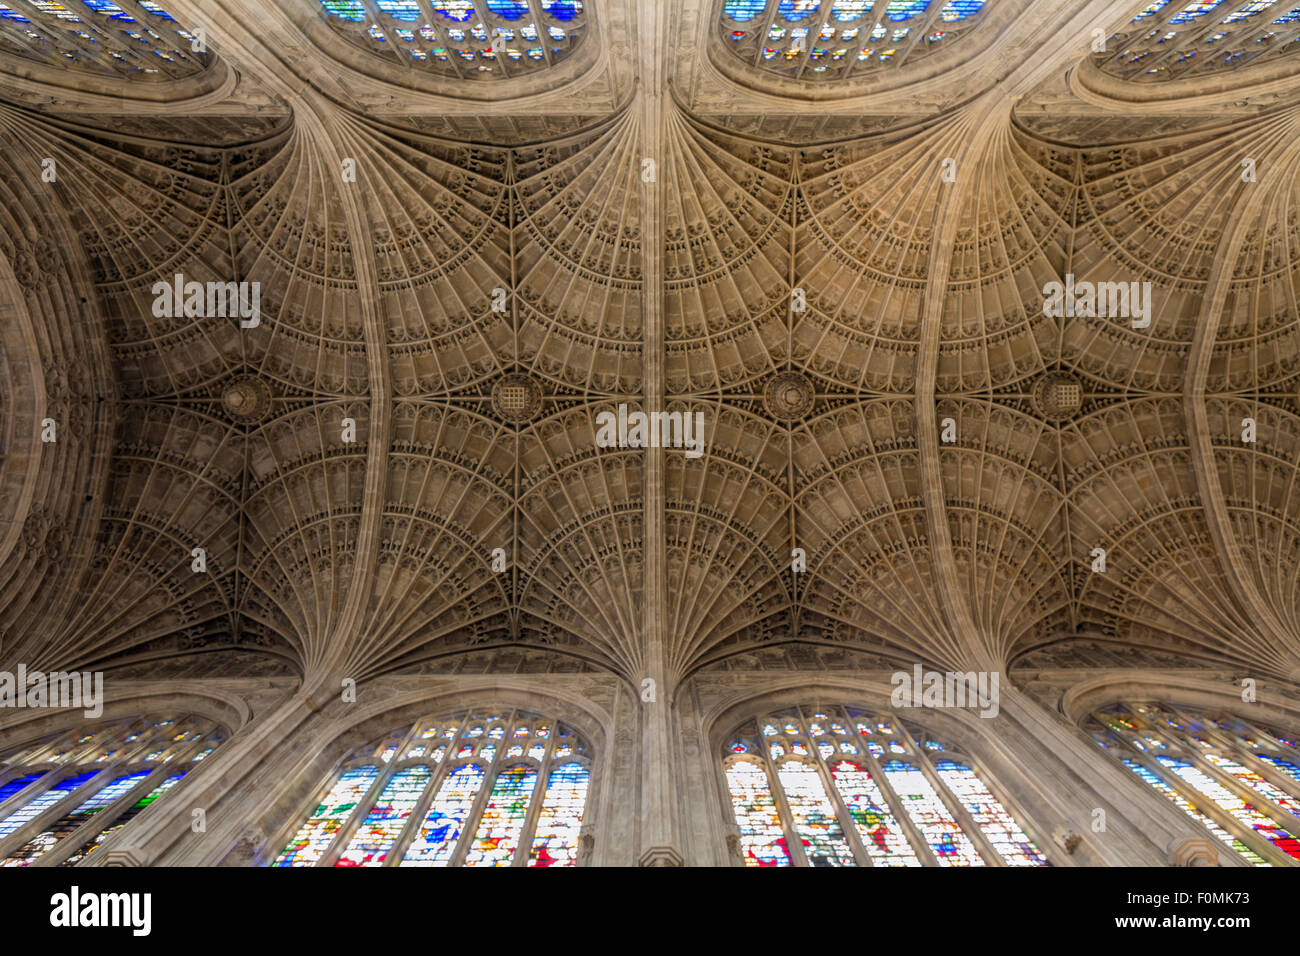 King's college chapel, Gothic fan vaulting - Stock Image